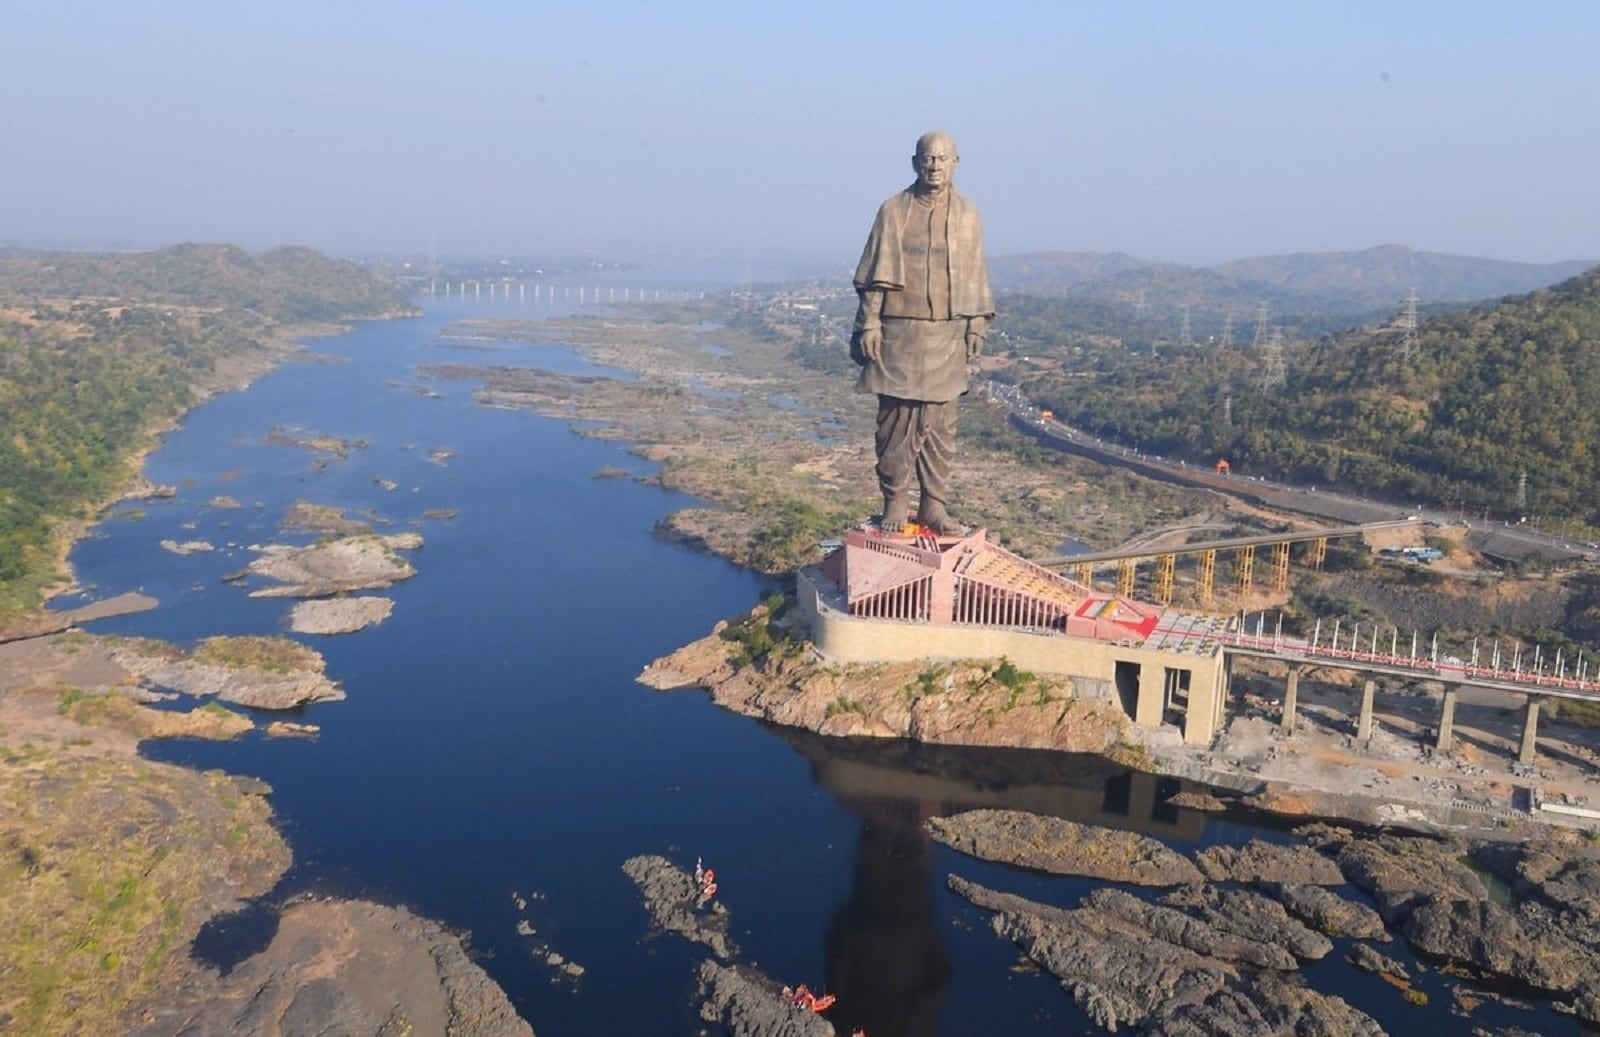 #31. Statue of Unity, Gujarat, India: The world's tallest statue, which was unveiled last year, stands at 597 ft. on an island in the Narmada River. It towers over the Sardar Sarovar Dam in the western Indian state of Gujarat, offering visitors the chance to see views of the nearby mountain ranges from its chest. The tourist attraction pays homage to Sardar Vallabhbhai Patel, who became India's first deputy prime minister in 1947. (Image: IANS)